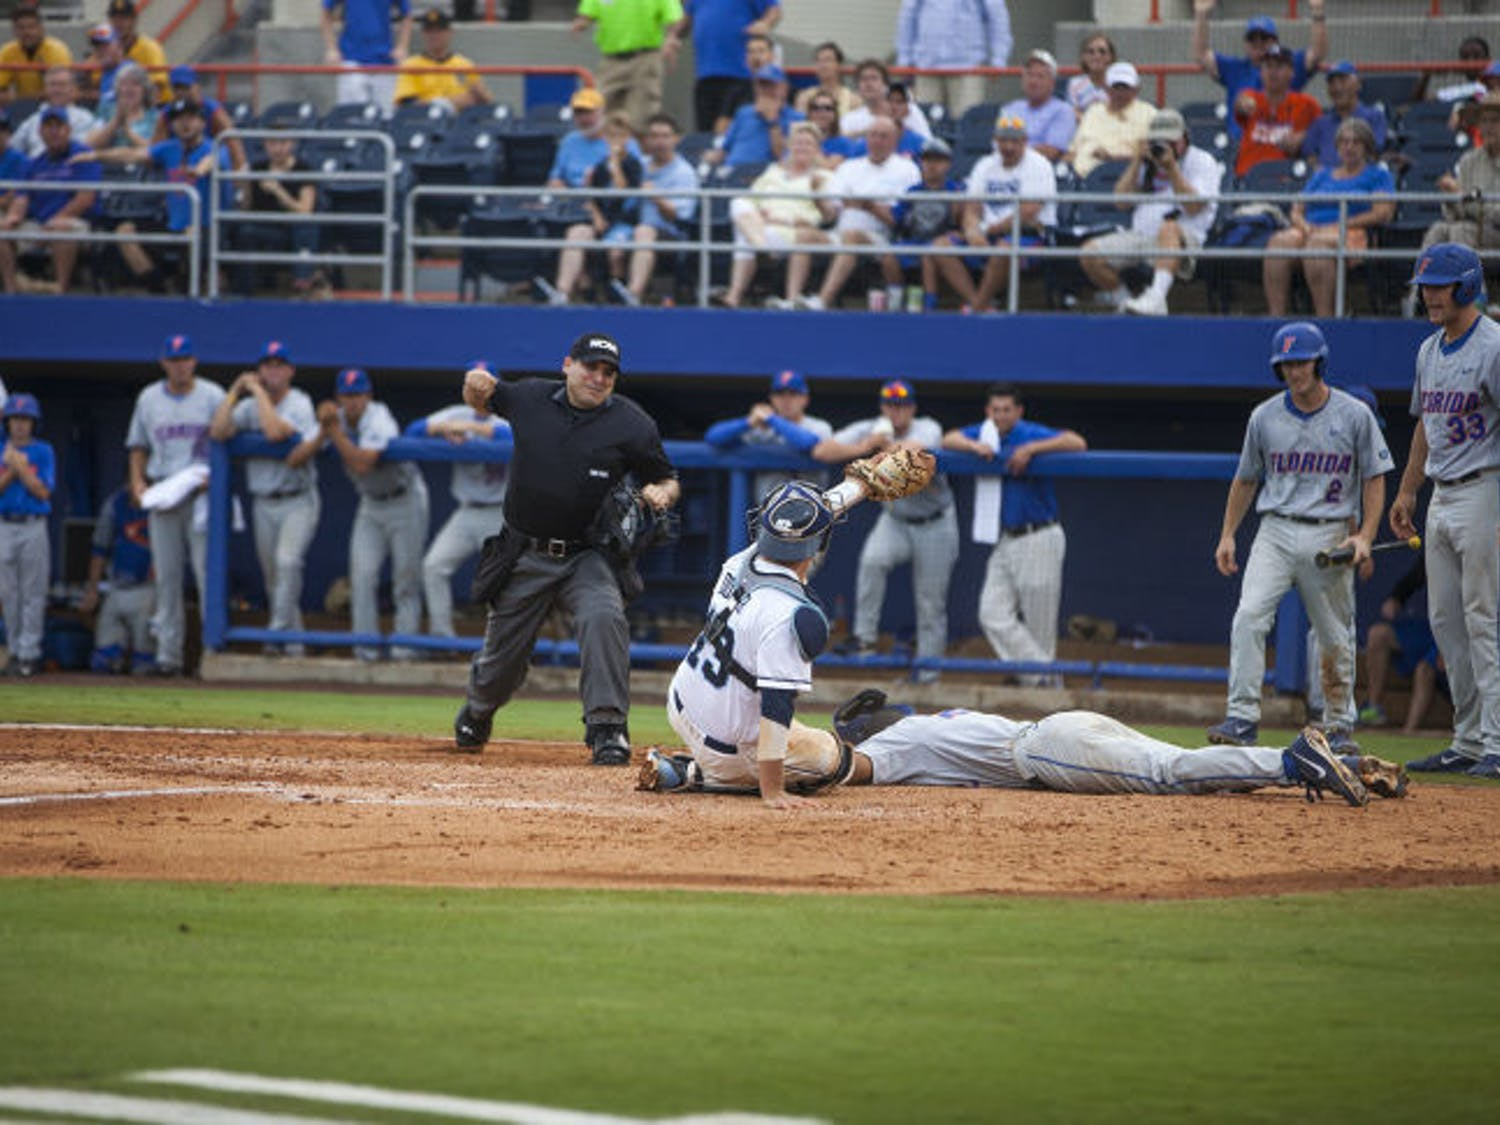 UF shortstop Richie Martin is tagged out at home plate by UNC catcher Korey Dunbar during Florida's 5-2 loss on Saturday at McKethan Stadium. The loss eliminated the Gators from the NCAA Tournament.